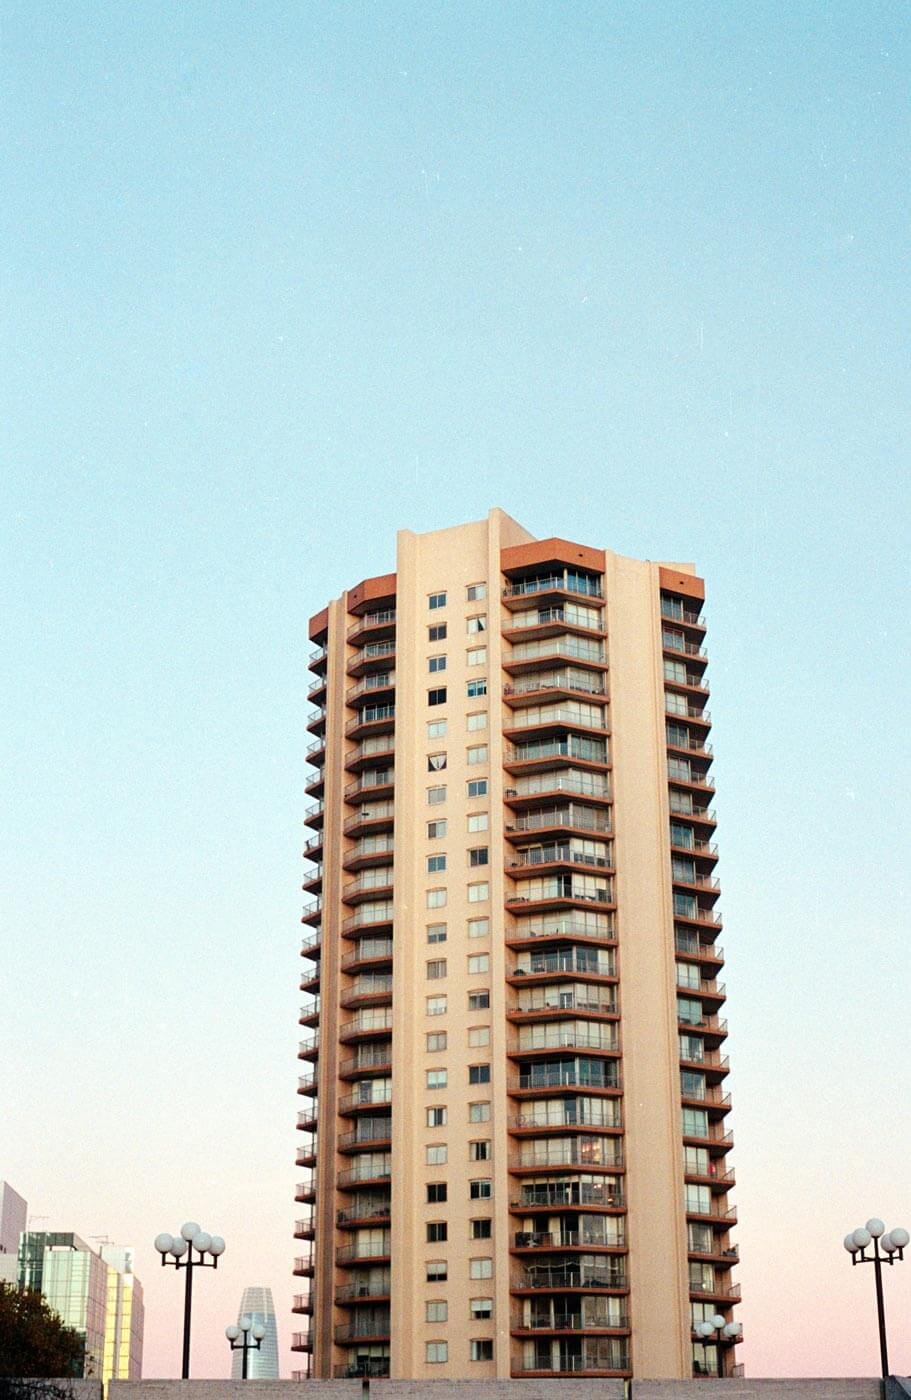 Apartment on Gough in front of a blue-pink gradient sunset